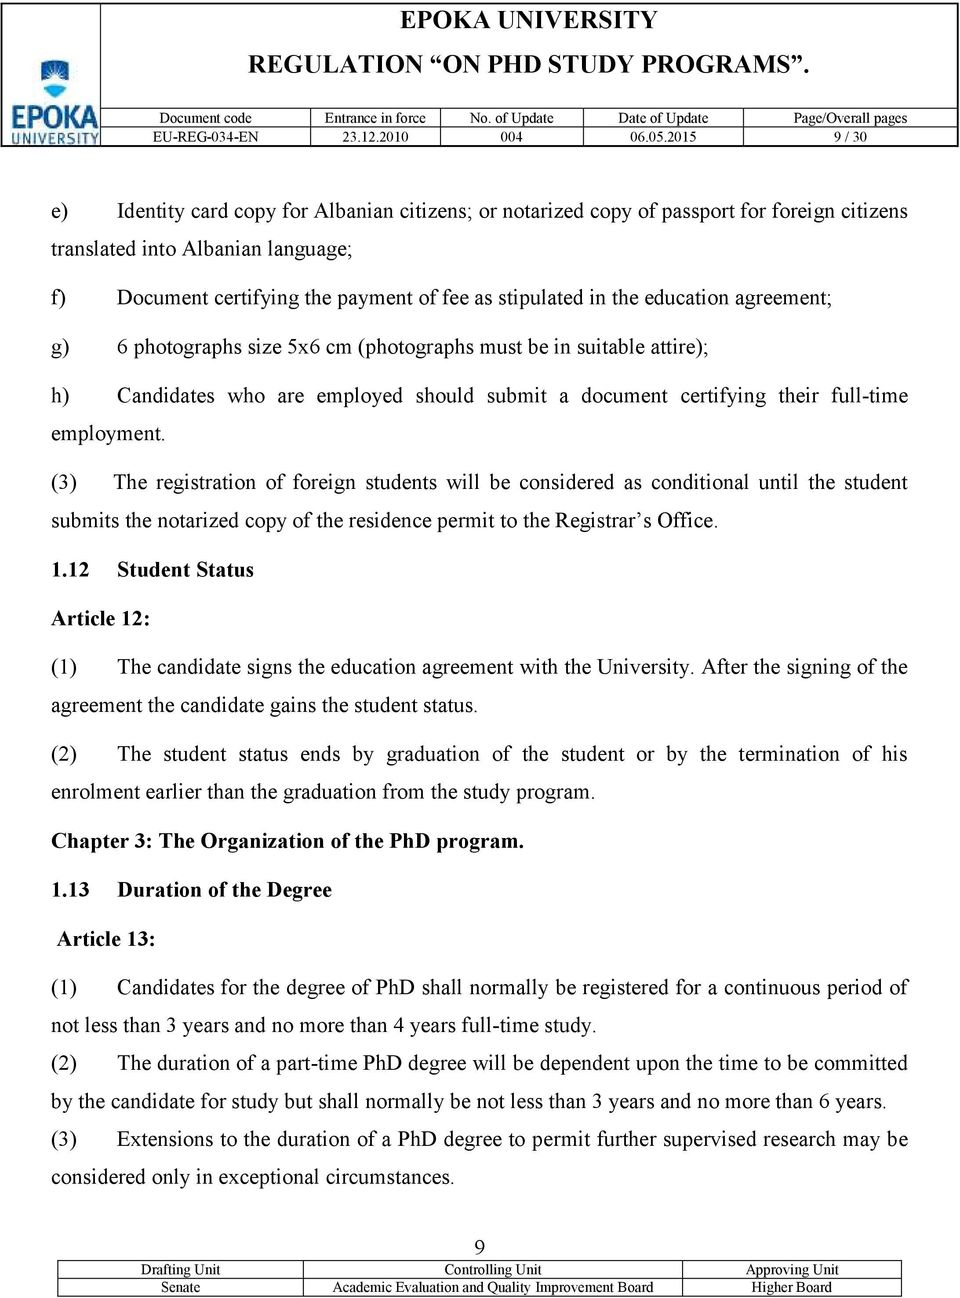 in the education agreement; g) 6 photographs size 5x6 cm (photographs must be in suitable attire); h) Candidates who are employed should submit a document certifying their full-time employment.